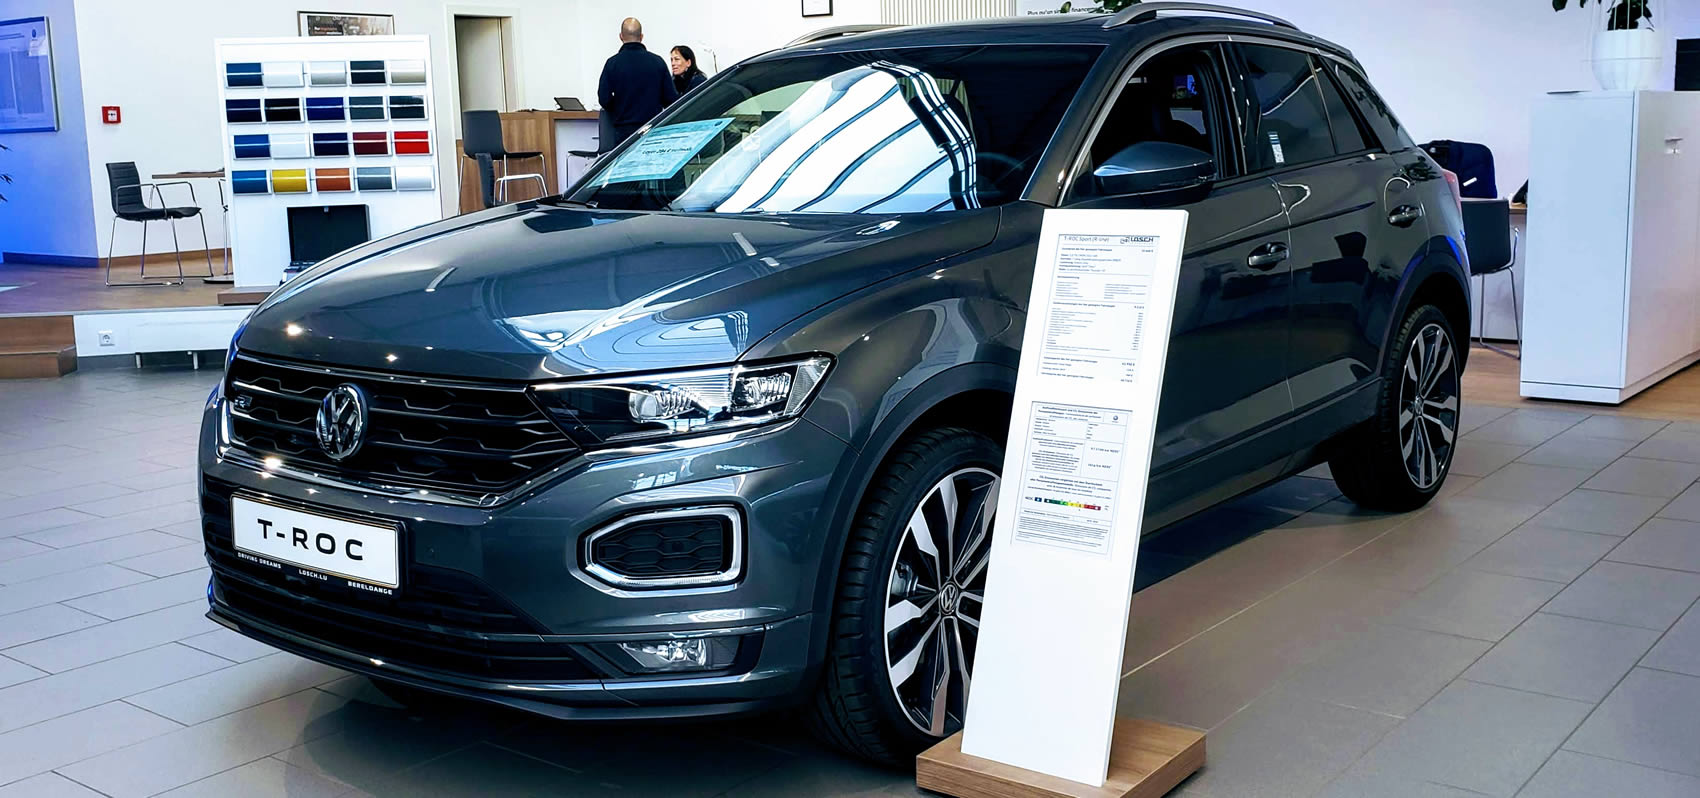 2019 VW T-Roc: The Volkswagen SUV that May come to Canada